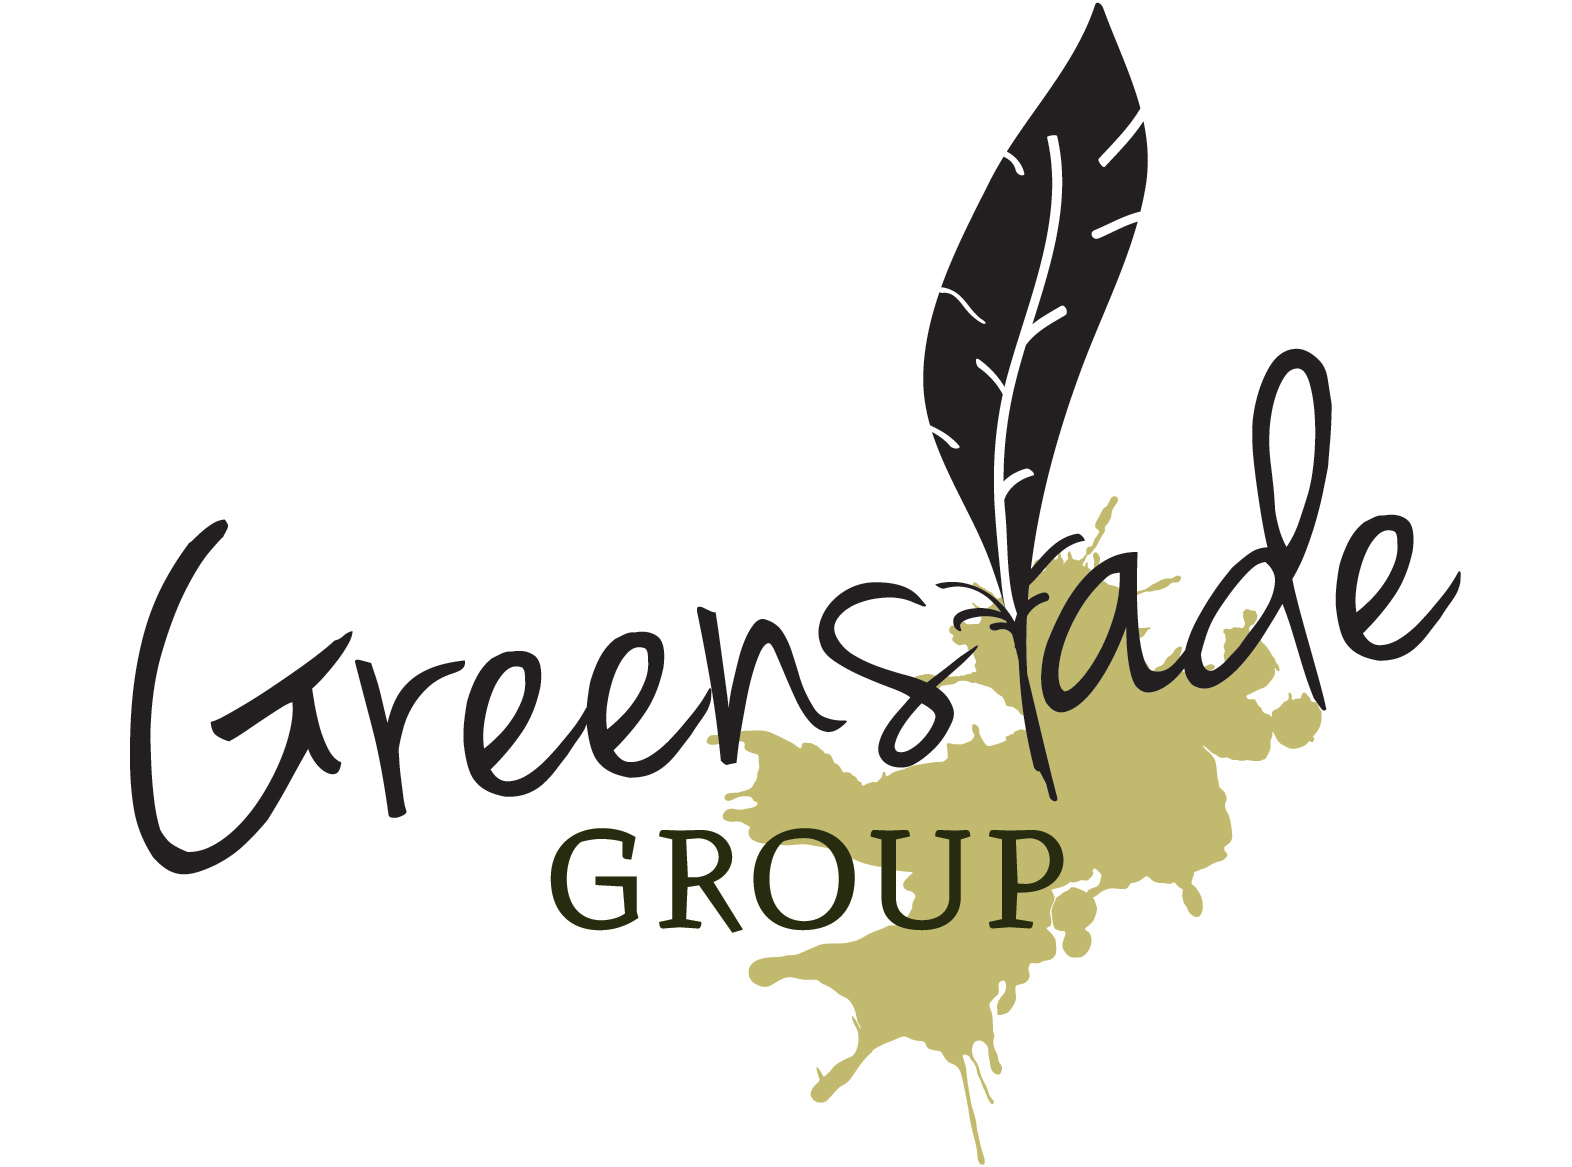 Greenslade Group